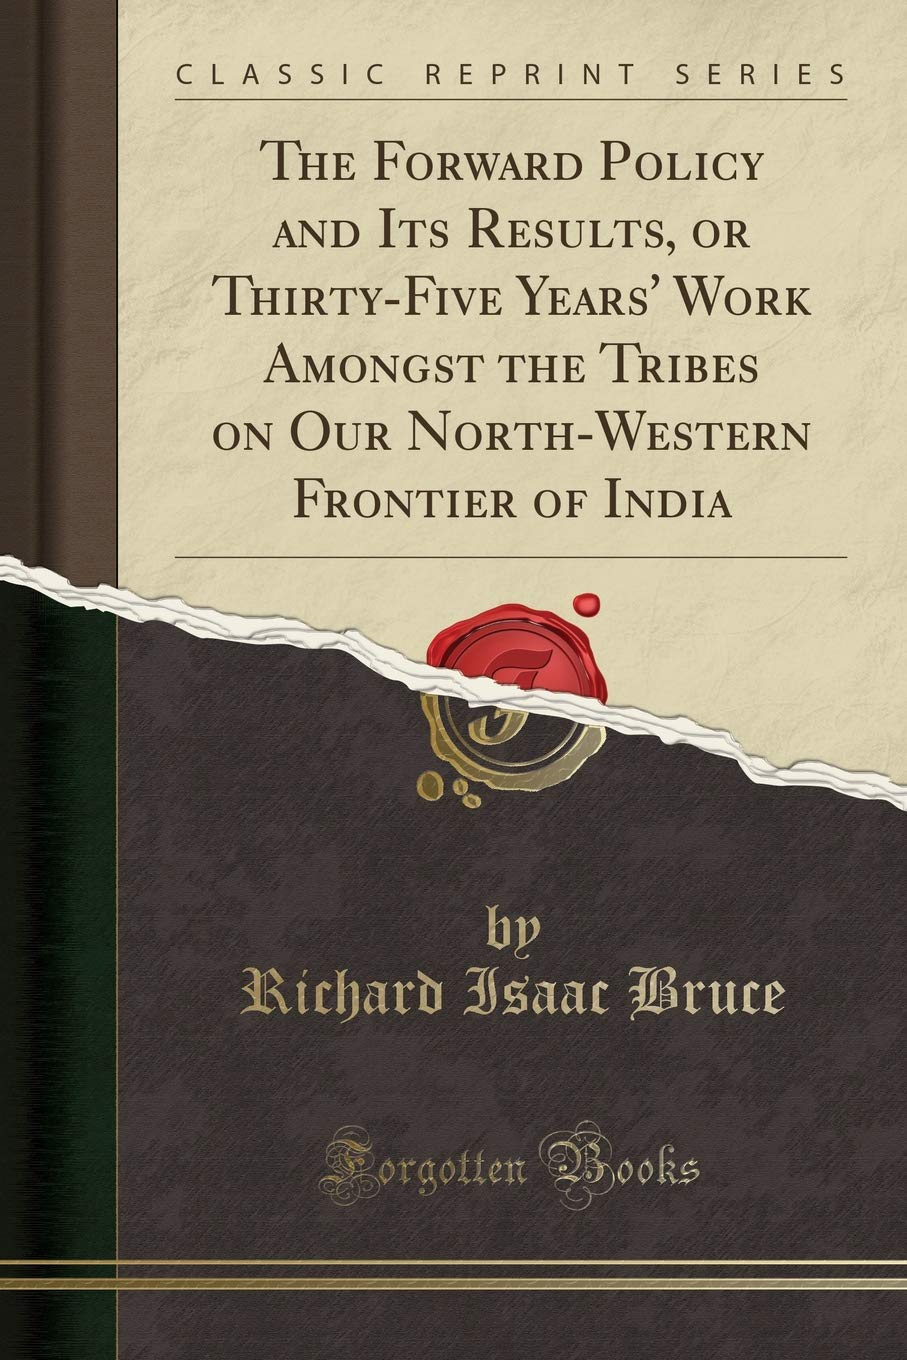 The Forward Policy and Its Results, or Thirty-Five Years' Work Amongst the Tribes on Our North-Western Frontier of India (Classic Reprint) pdf